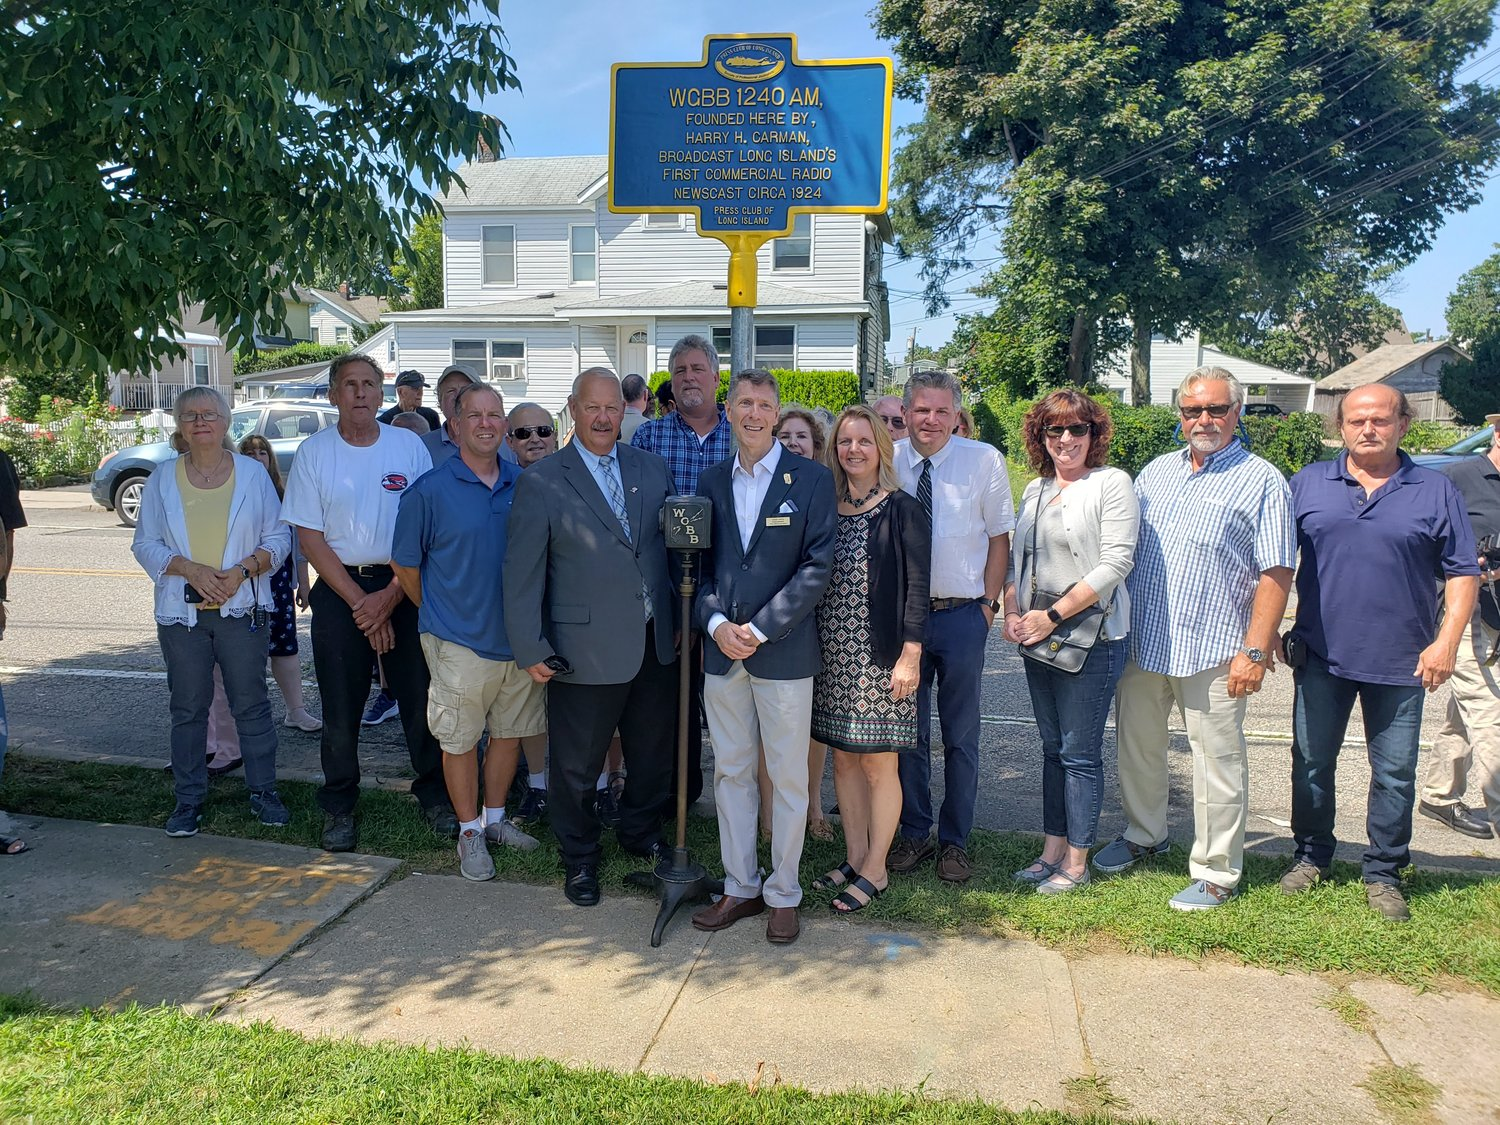 Members of the Press Club of Long Island, along with former journalists, local elected officials and members of the village's Historical Society and Landmarks Commission, gathered beneath the new WGBB historical marker.